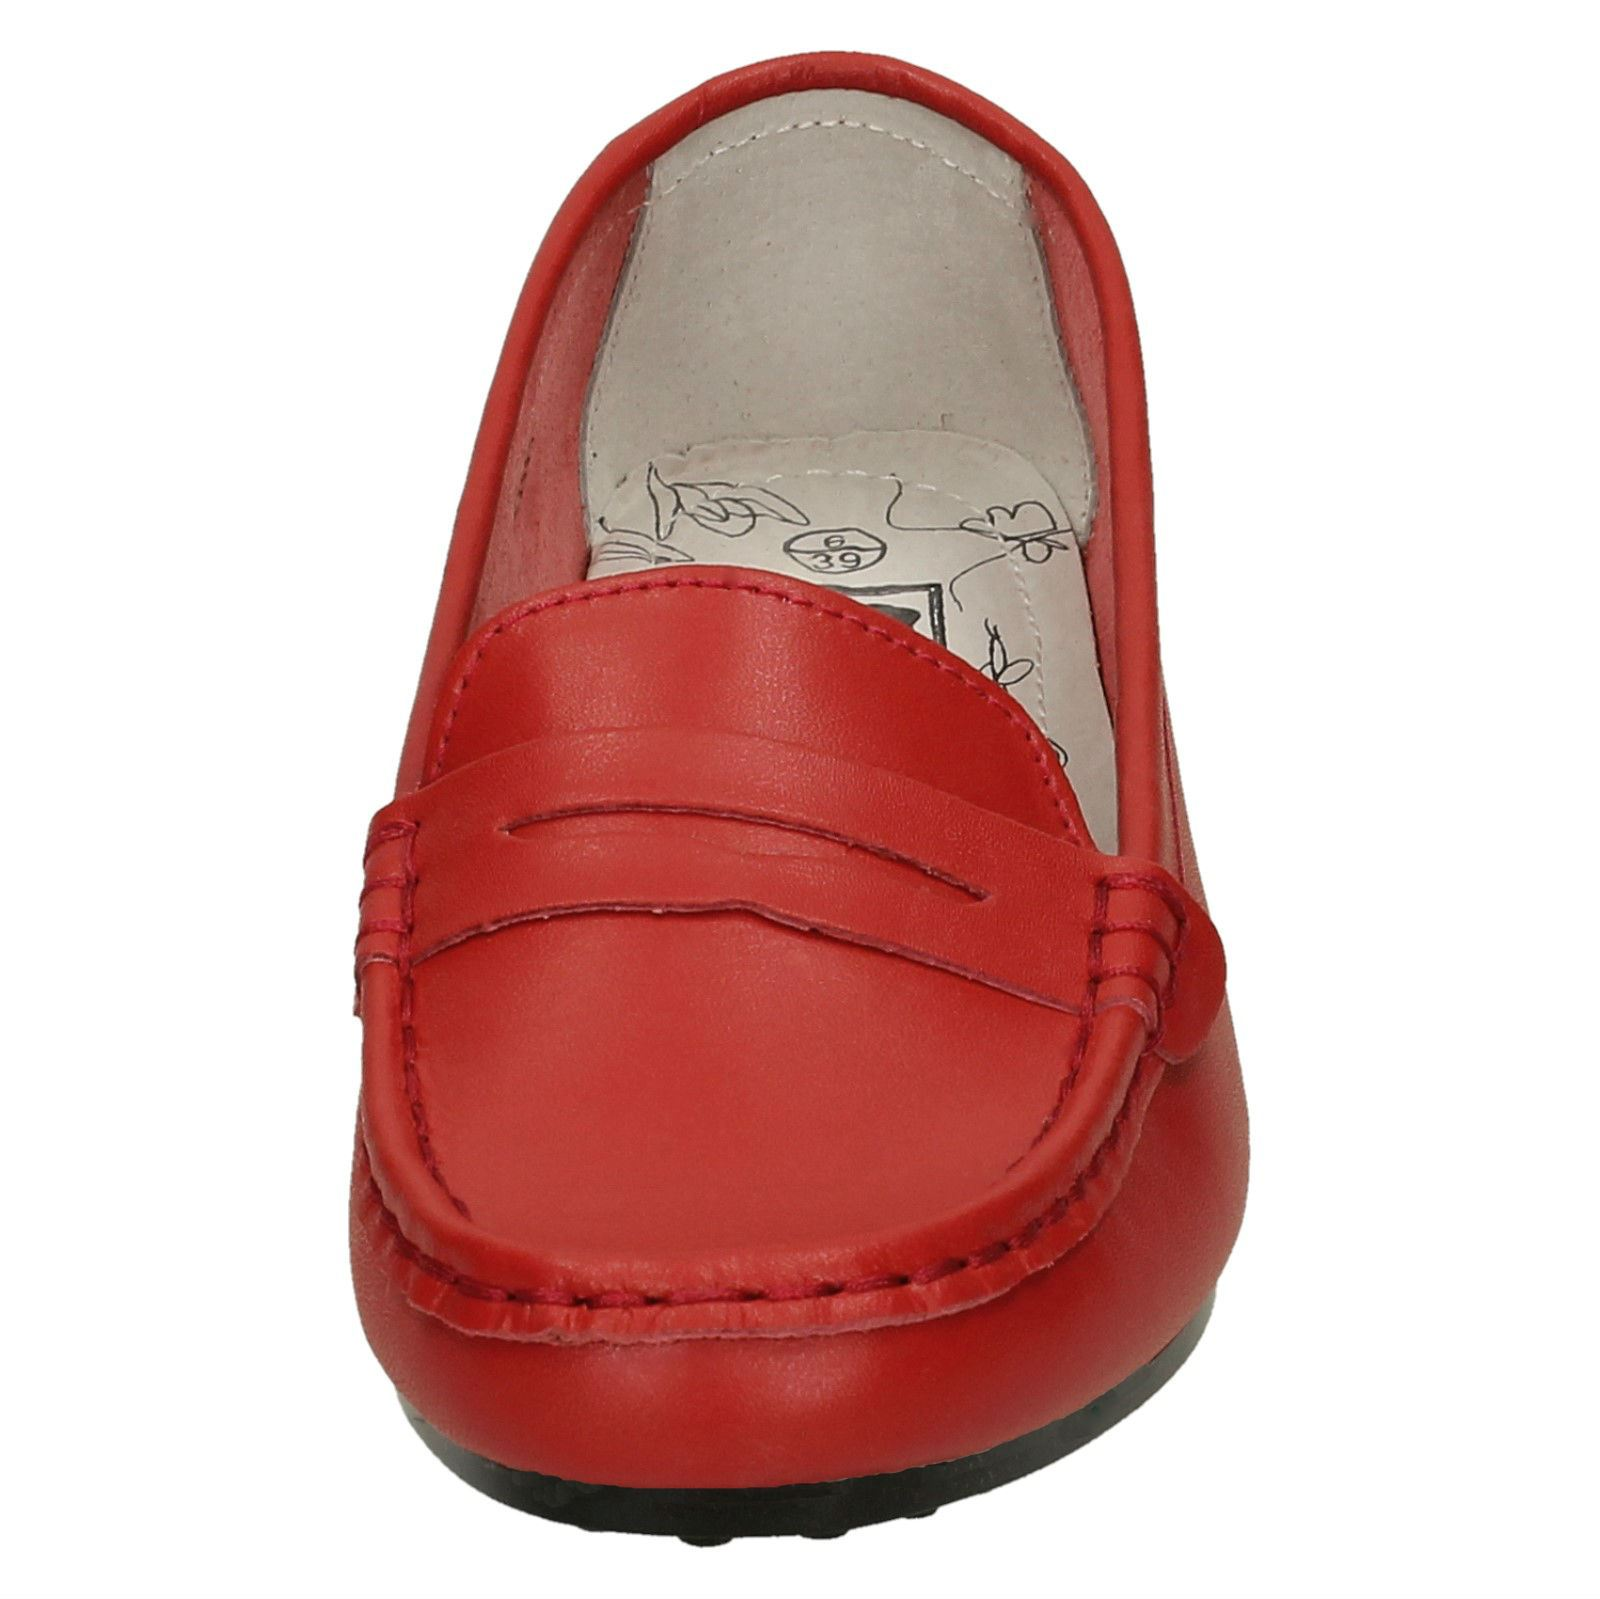 Ladies Down To Earth Flat Saddle Trim Vamp /'Moccasin/'